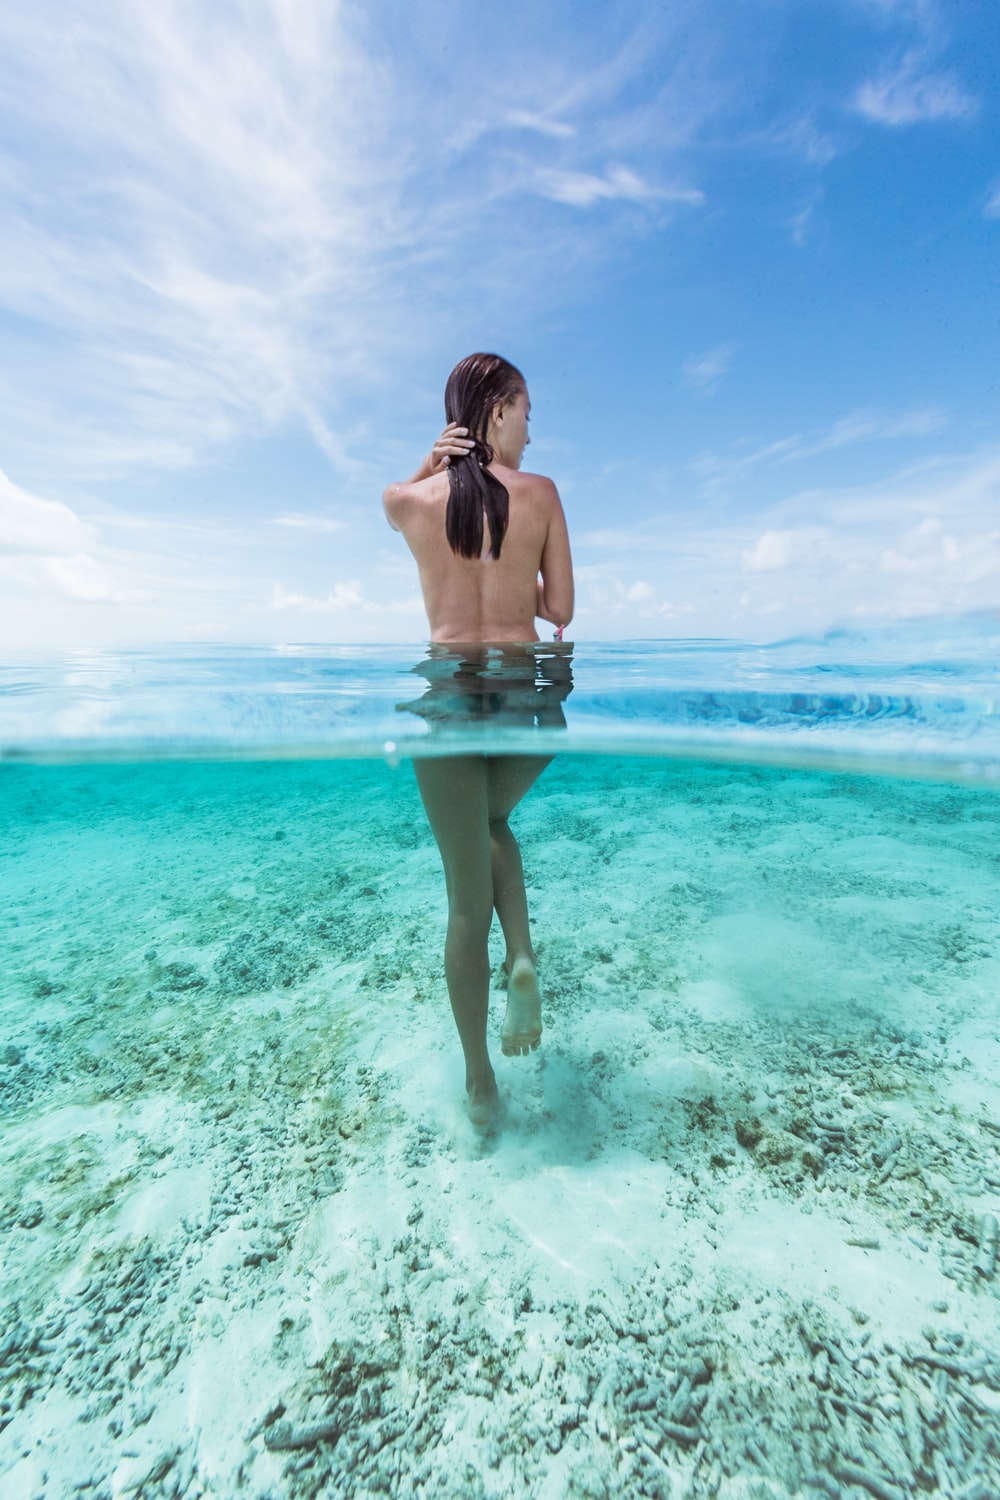 naked woman in water at daytime